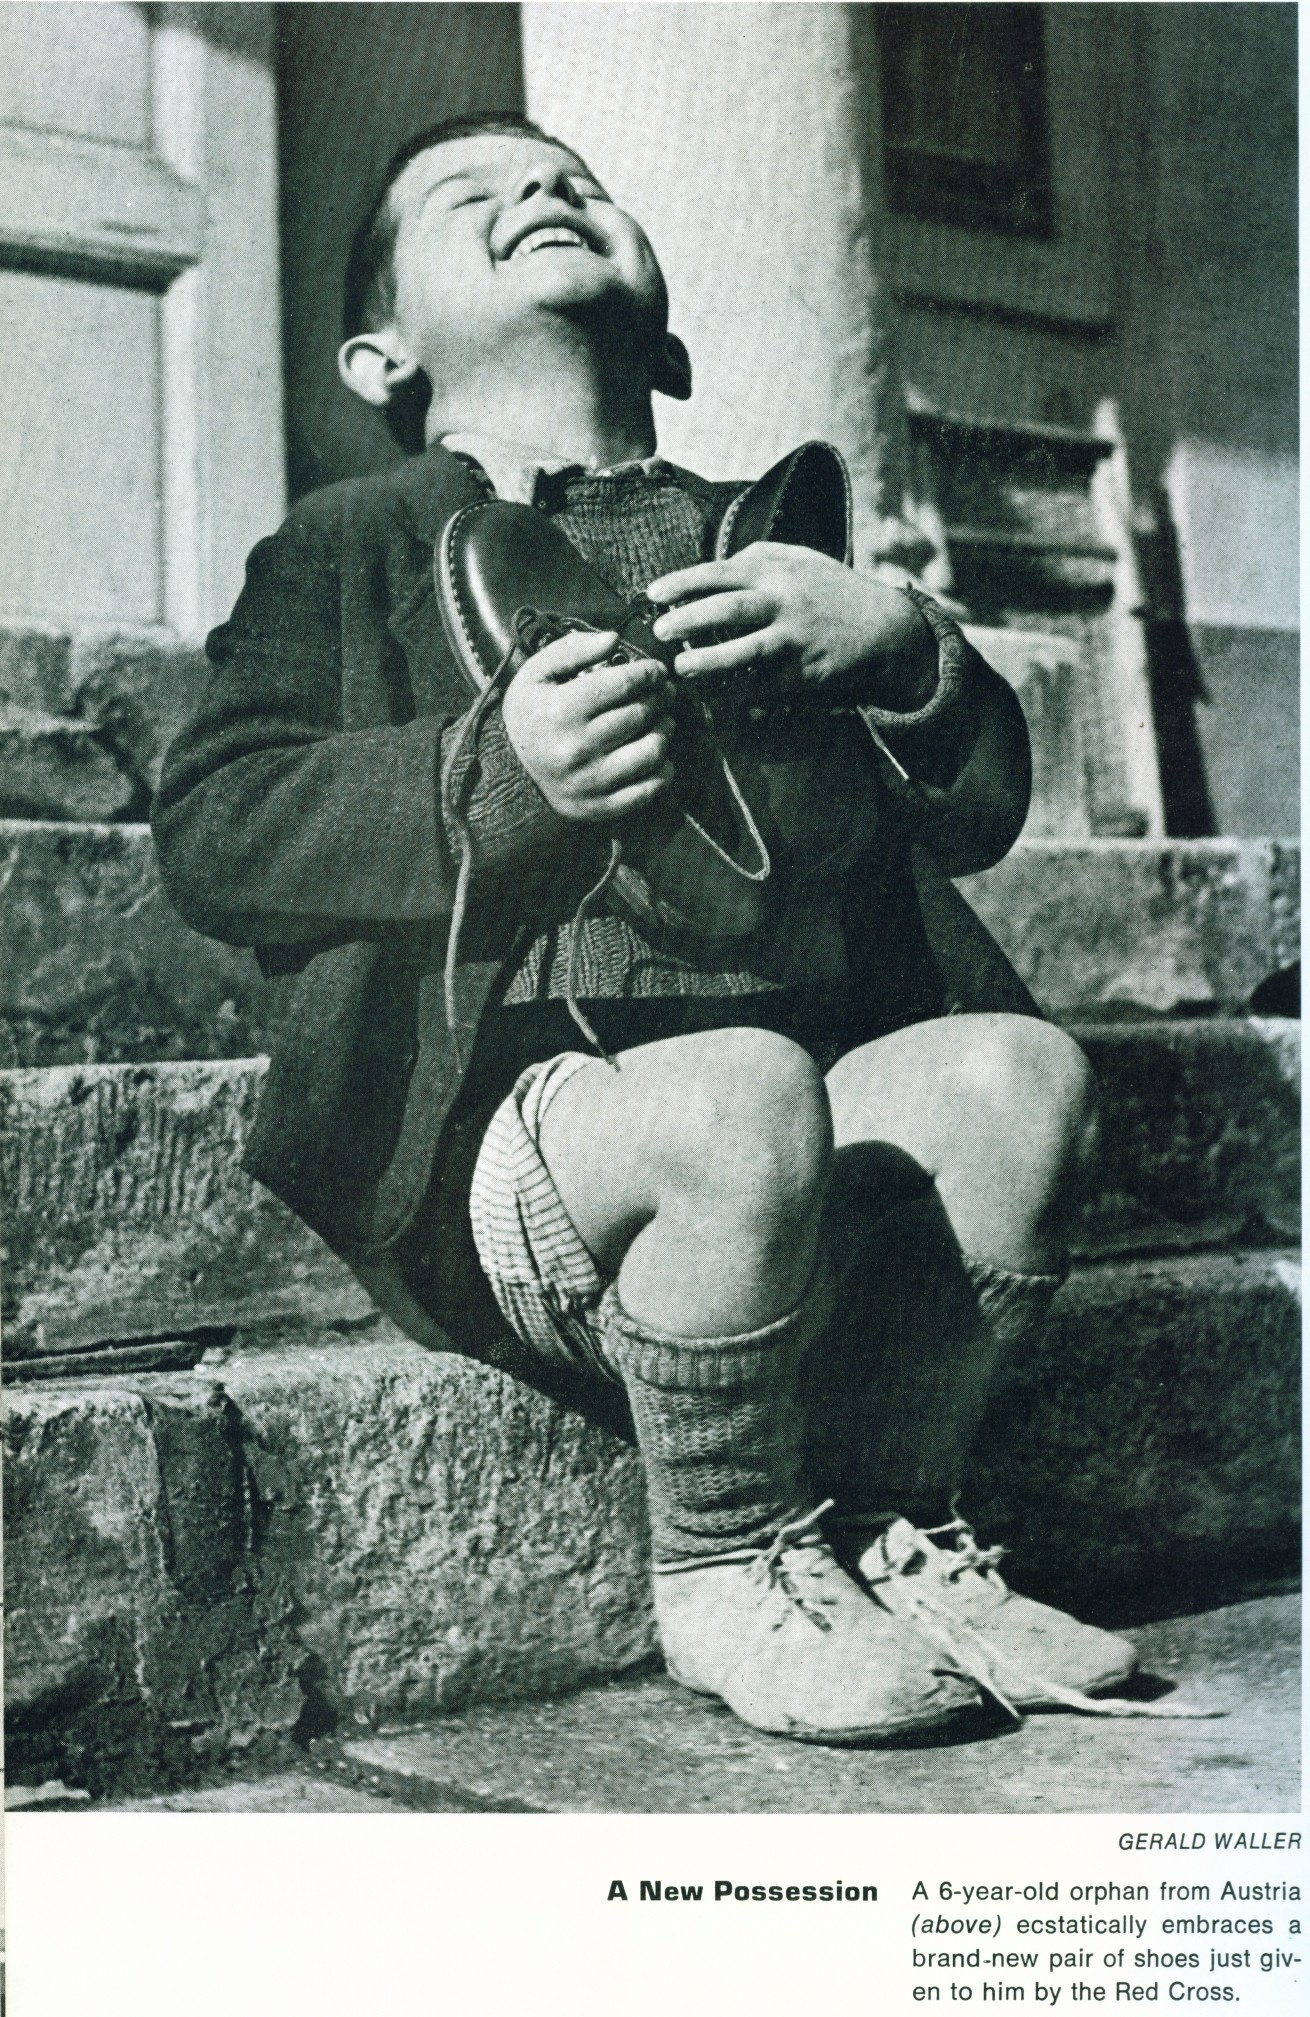 A 6 year old orphan from Austria ecstatically embraces a brand new pair of shoes given to him by the red cross